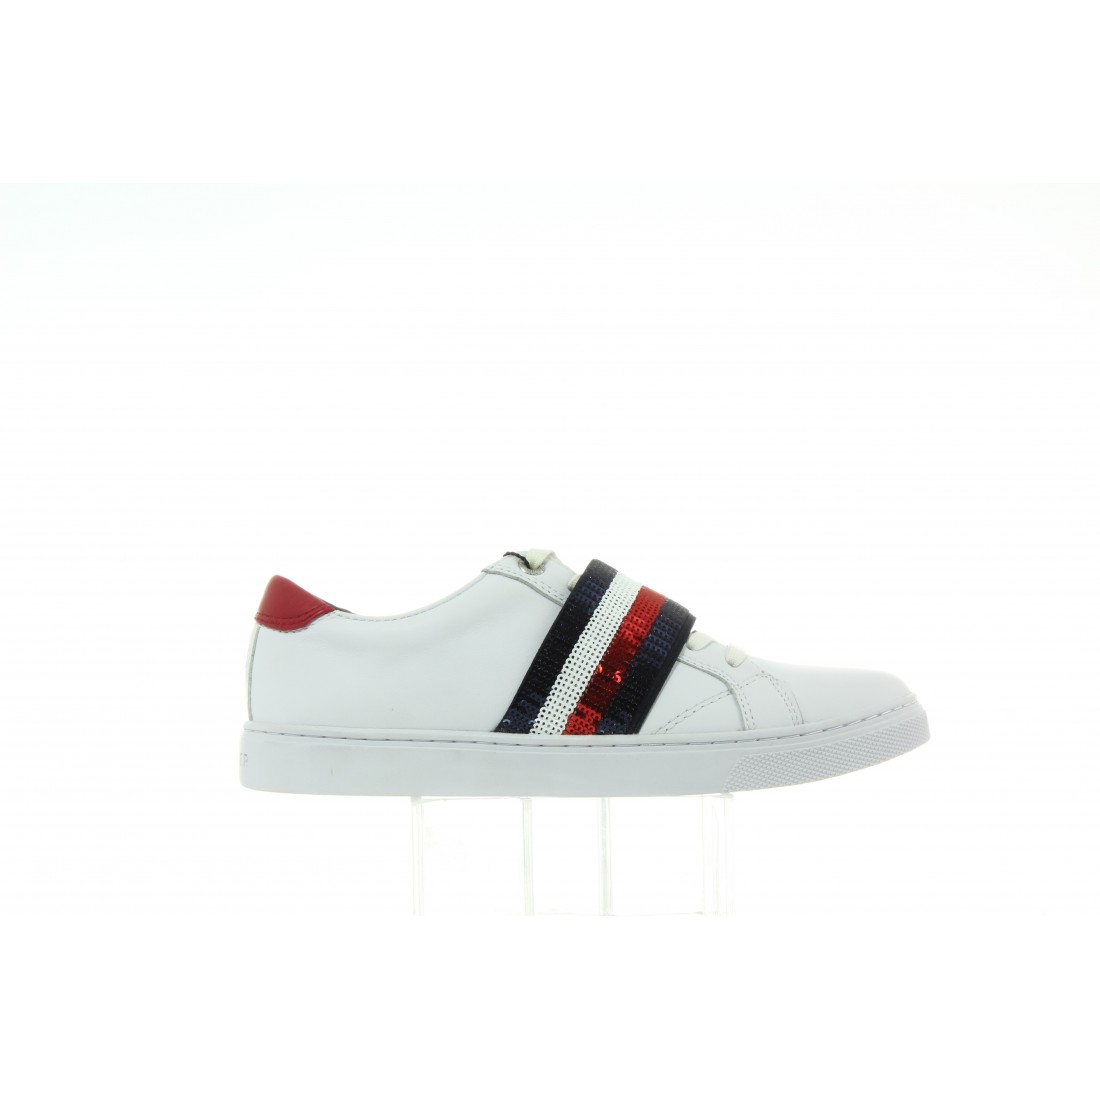 89bf44d0792d3 Sneakersy Tommy Hilfiger Venus 20A1 FW0FW02035 100